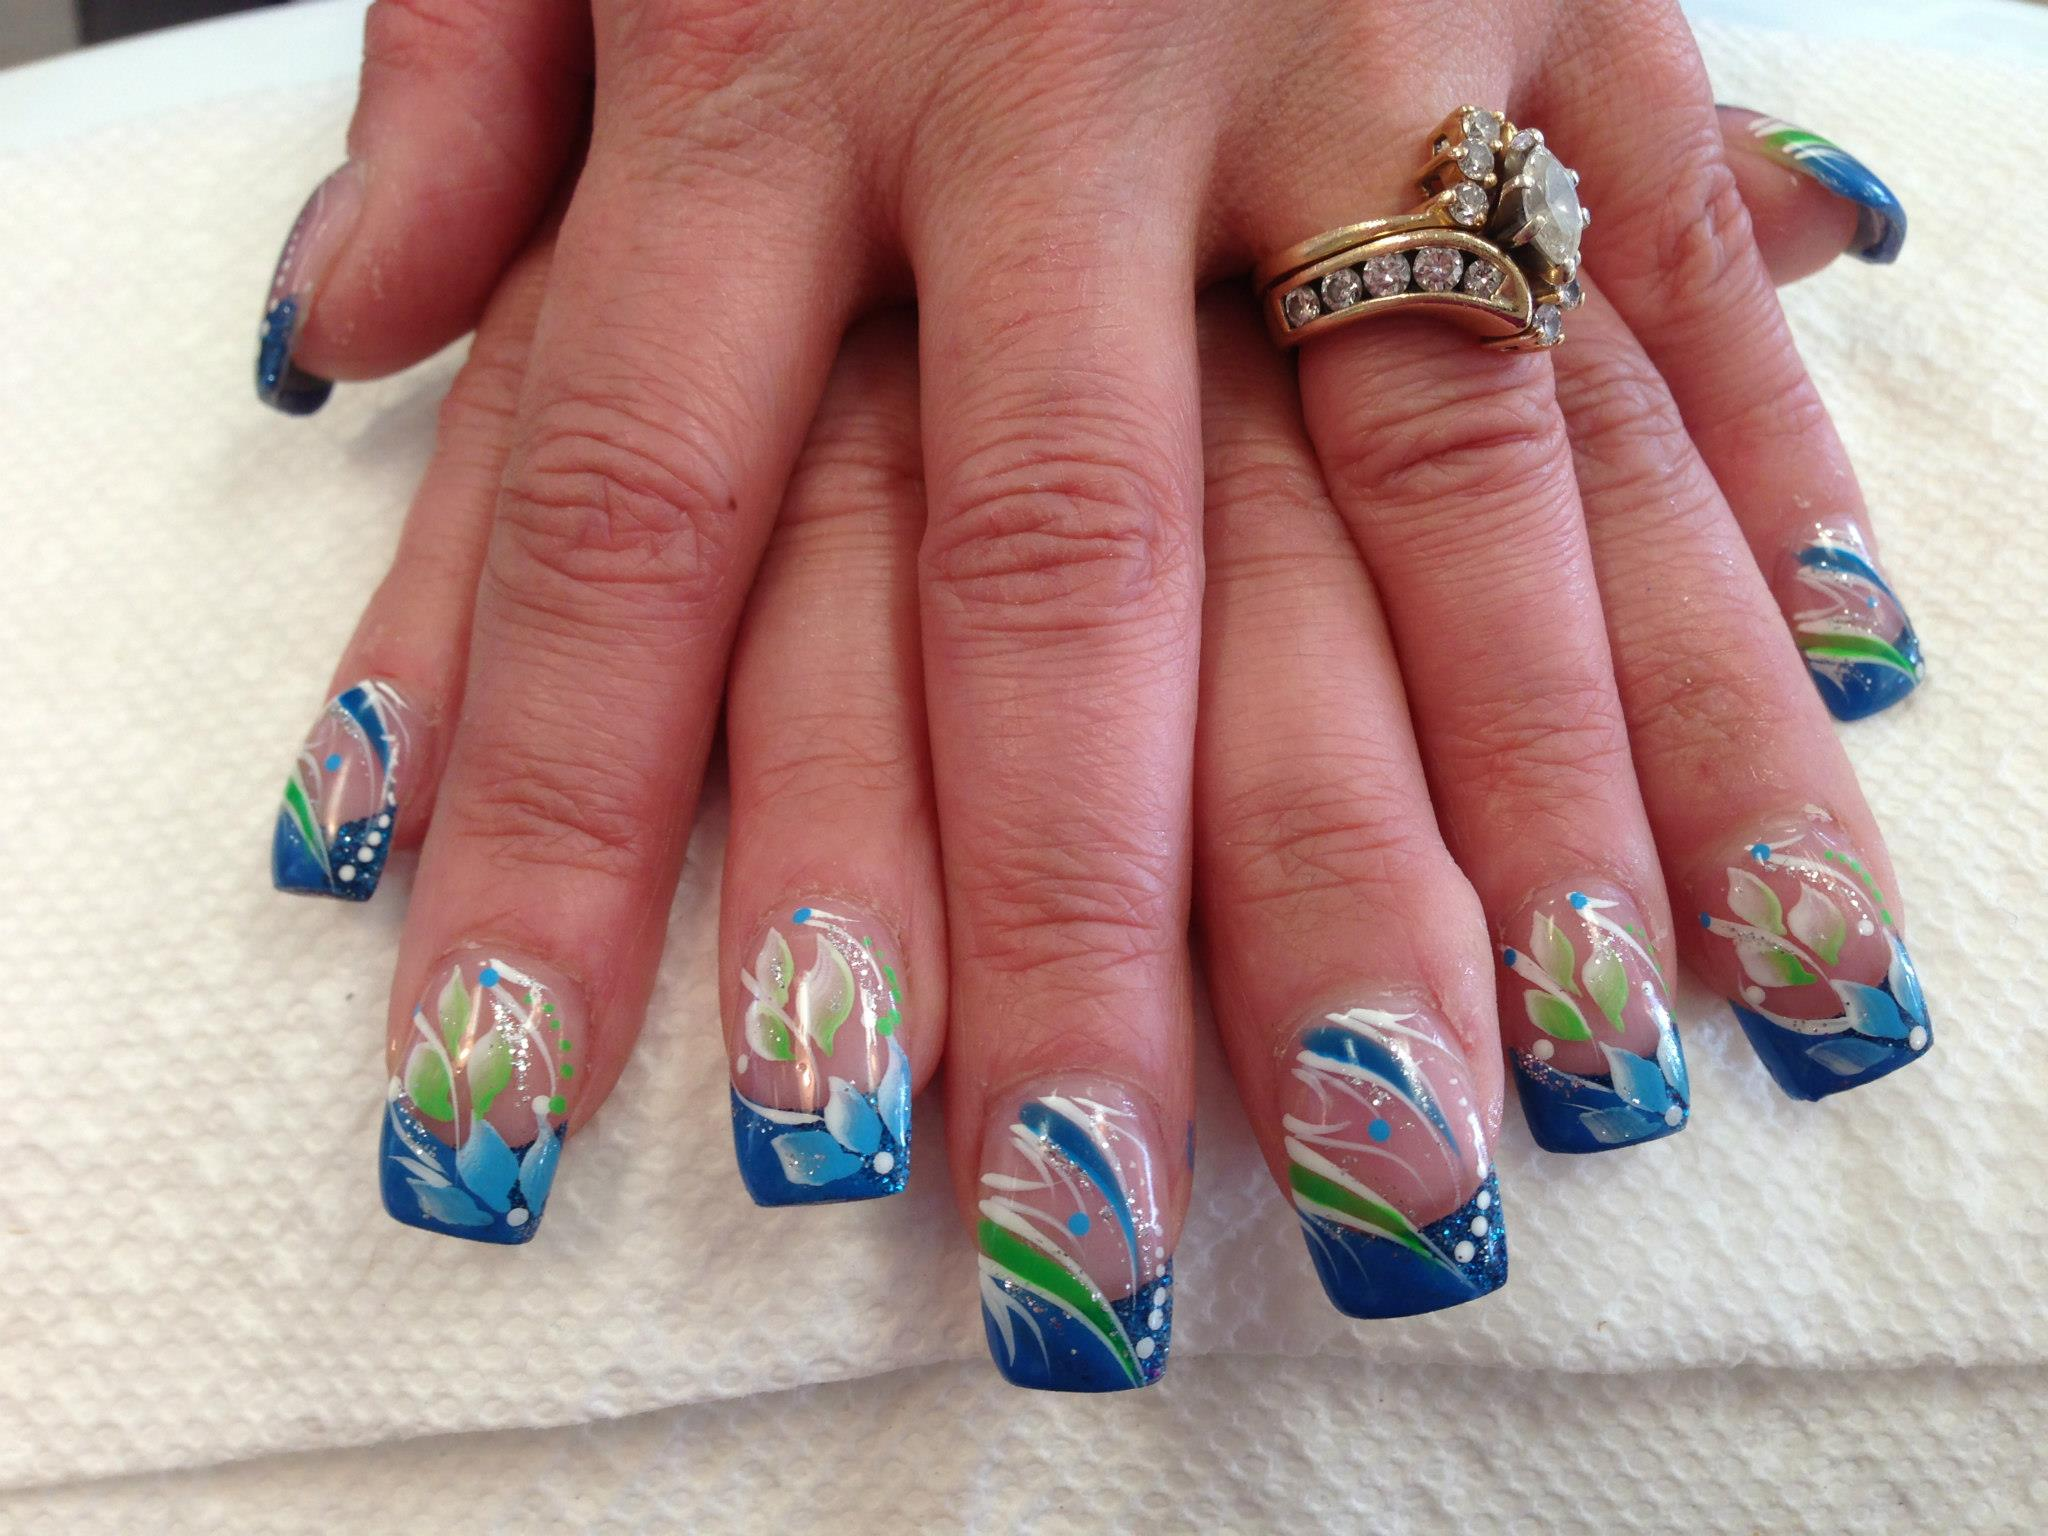 130g opaque blue tip with bluegreen petals whitegreenbluesparkly clearly blue nail designs prinsesfo Gallery